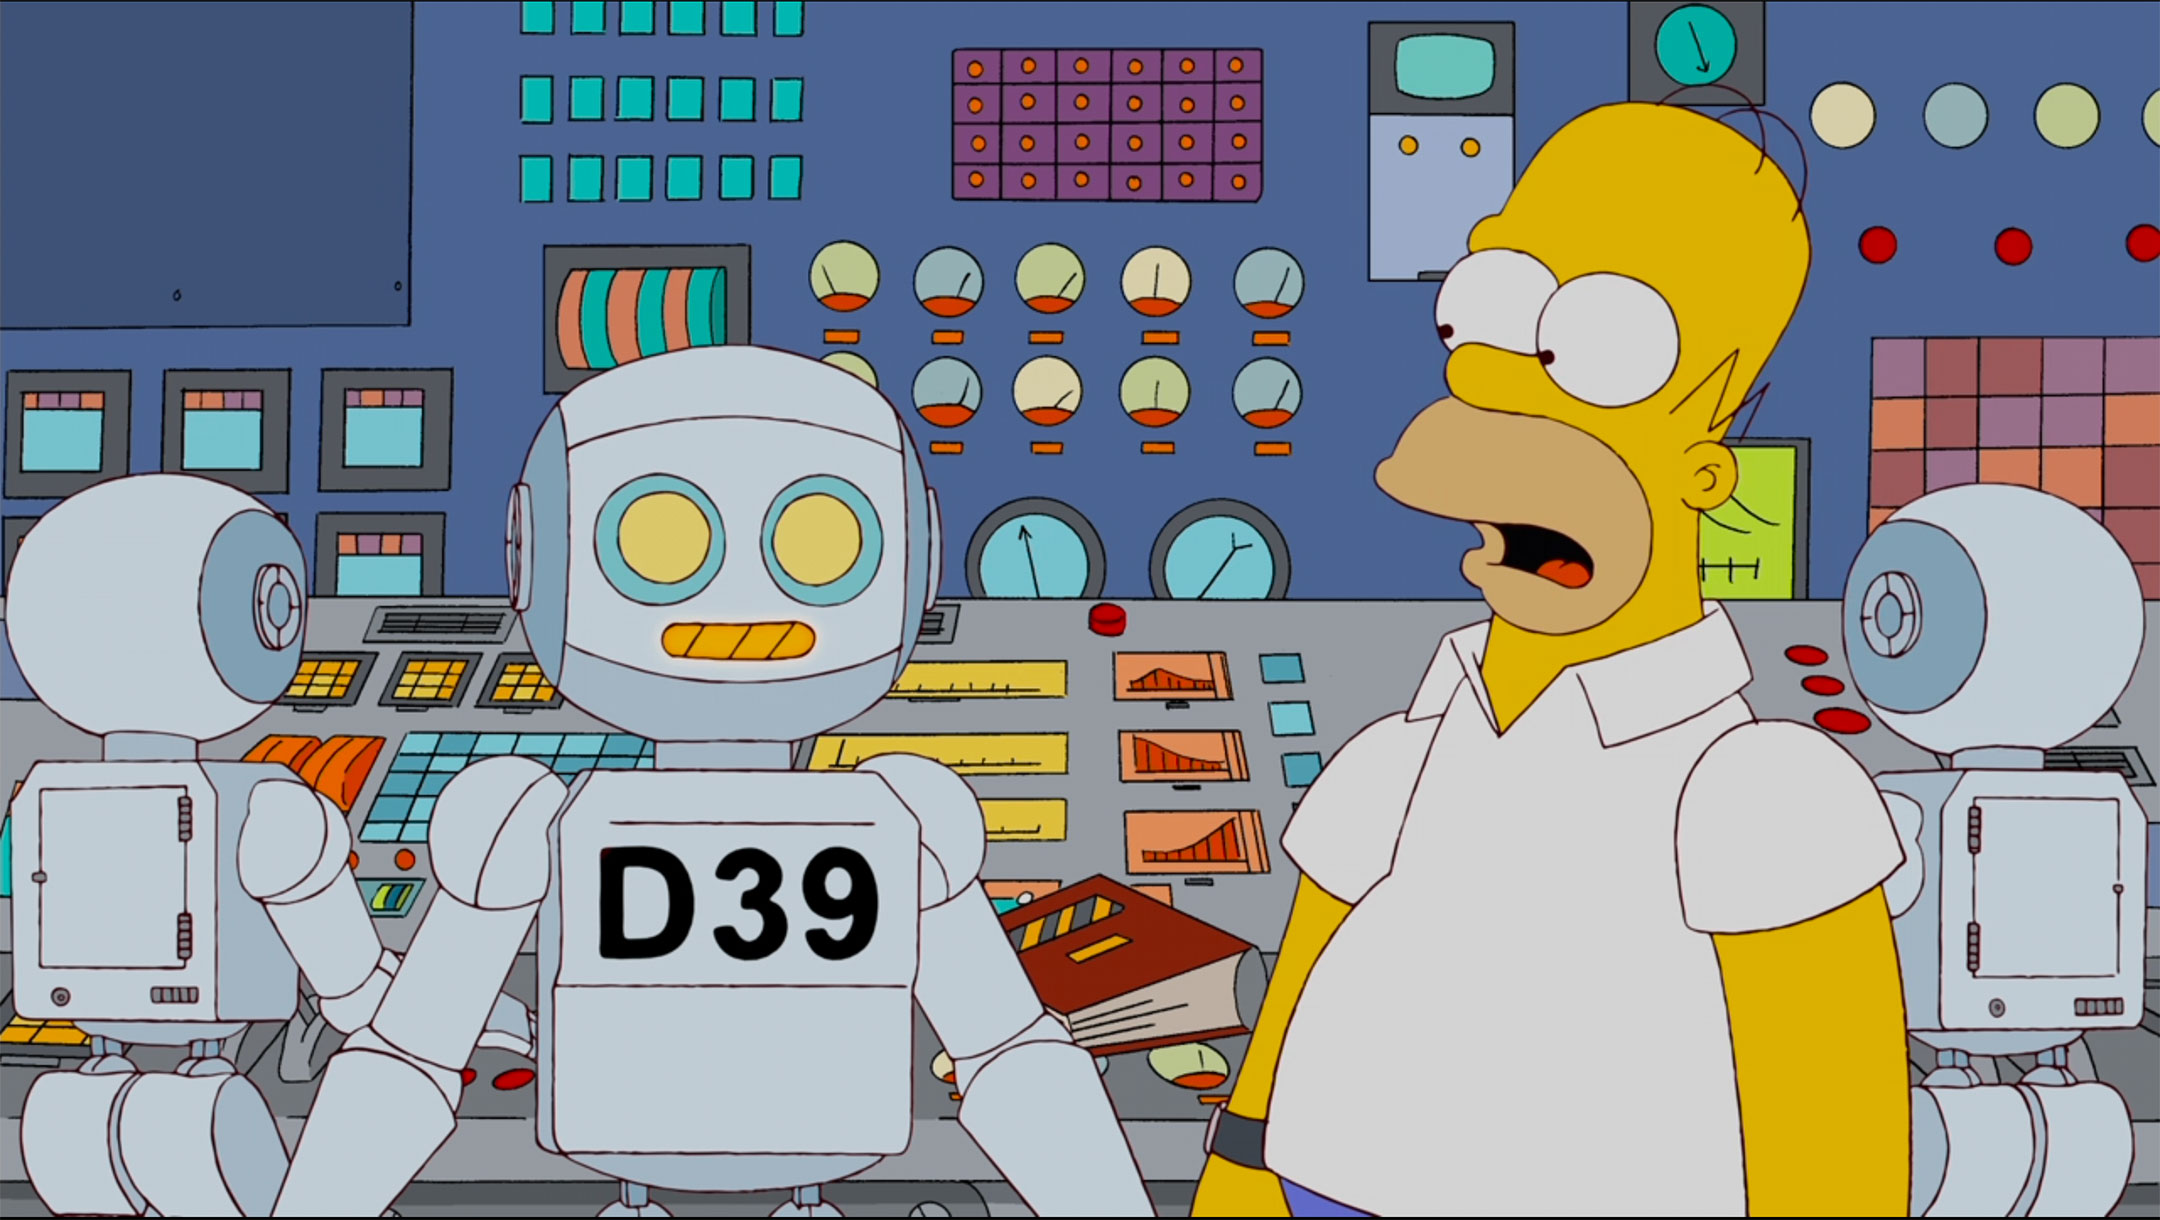 Screenshot from an episode of The Simpsons showing Homer working alongside a robot in the nuclear power plant